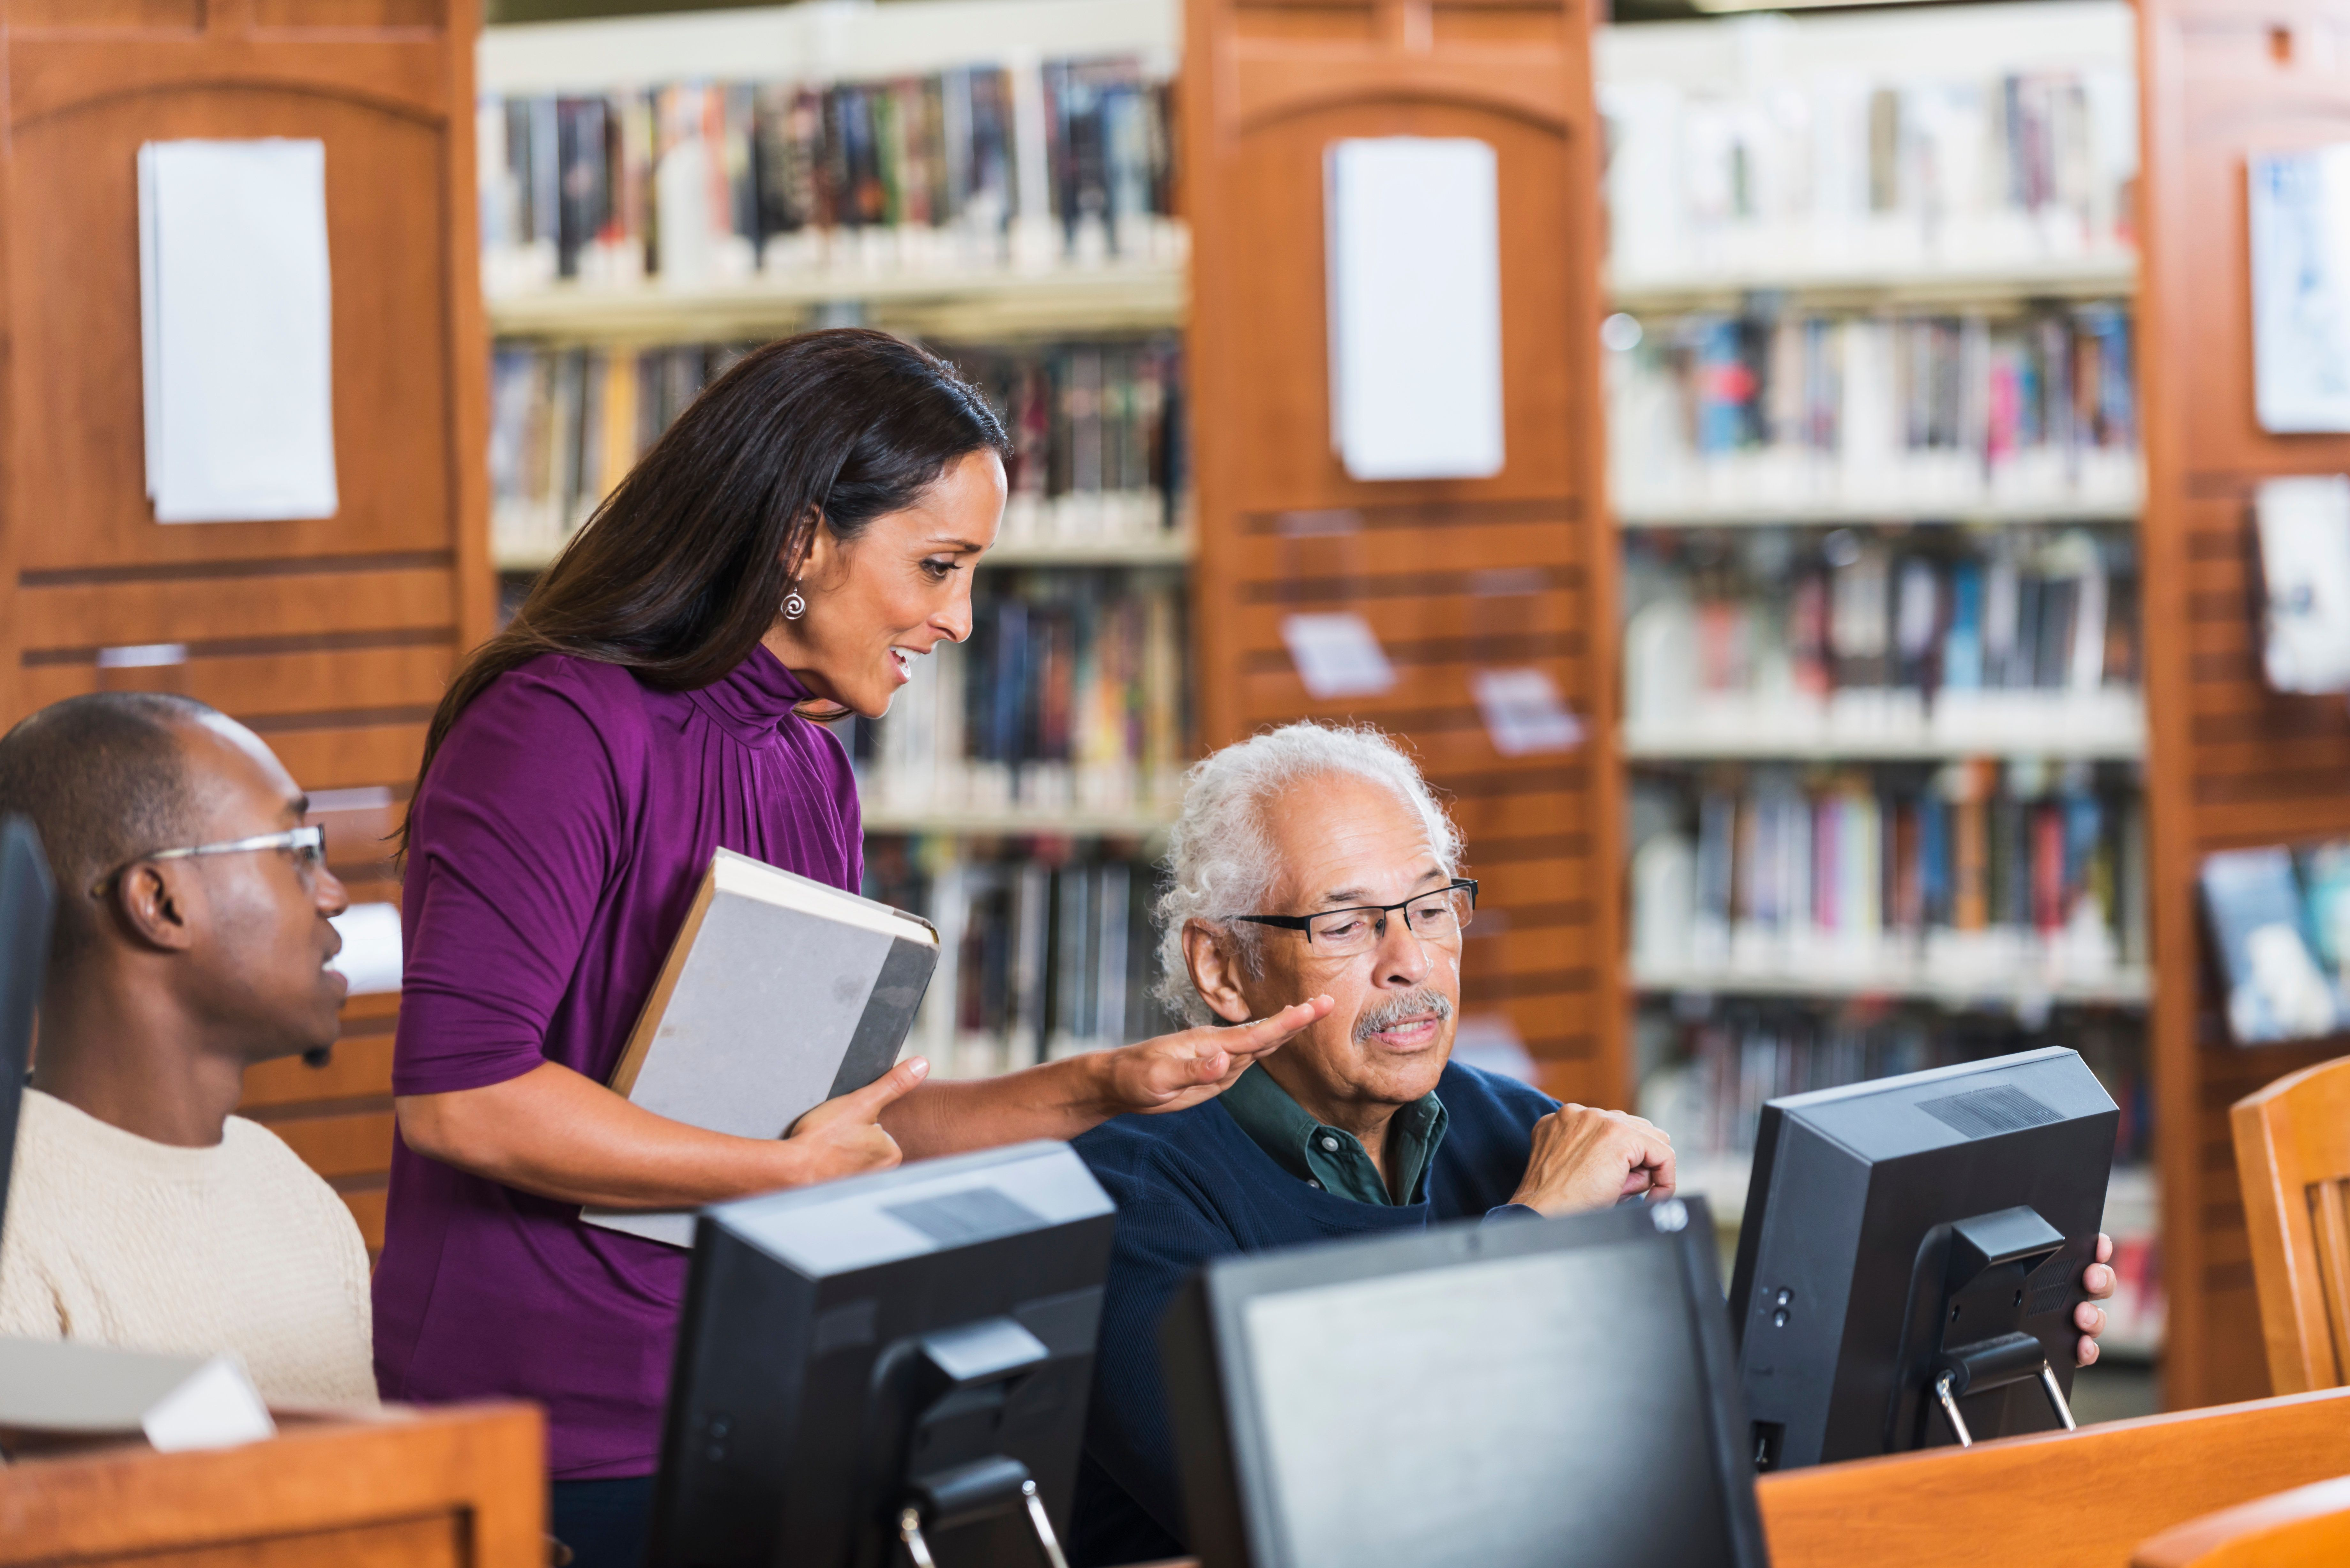 Senior Hispanic man in his late 70s using a computer in the library, getting help from a female librarian.  He is sitting down, looking at the screen.  She is standing beside him, talking and gesturing with her hand.  A young African American man is watching and listening to their conversation.